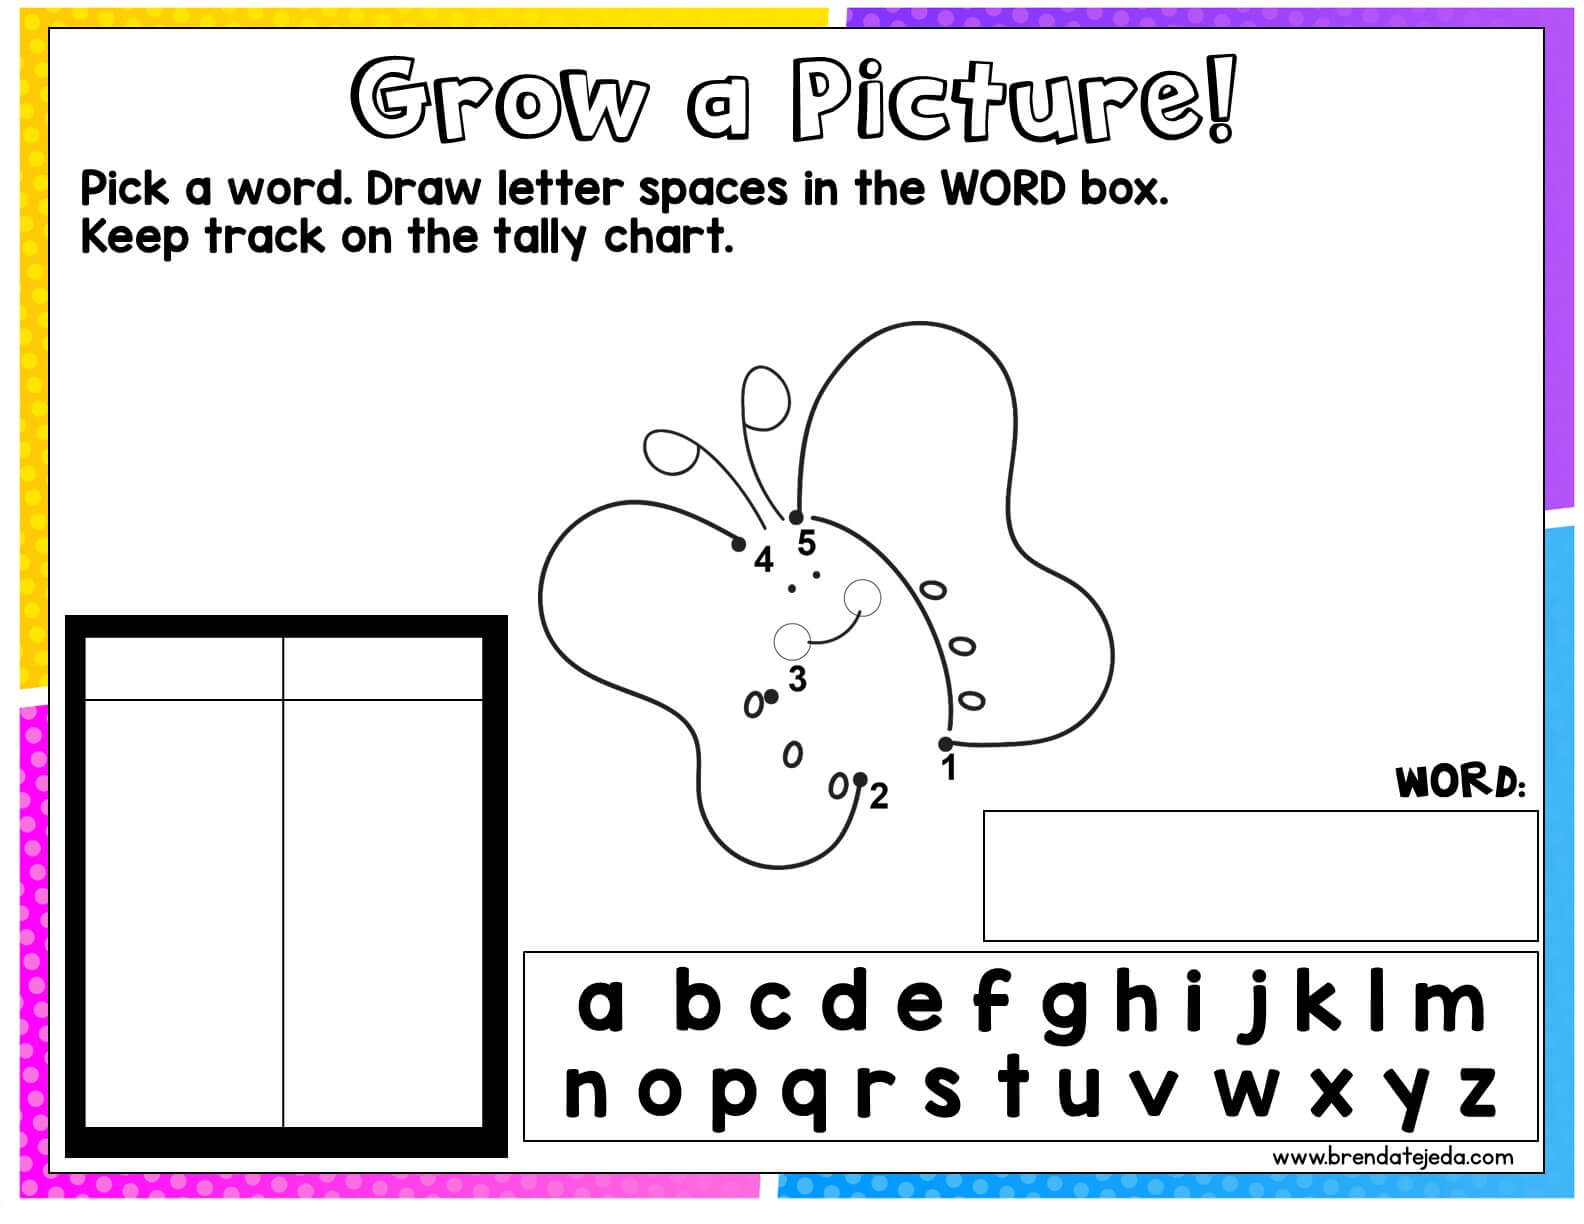 Free sight word game for your interactive whiteboard. This game is similar to hangman, but kids draw to connect the dots if they guess an incorrect letter. Perfect for sight word review when you have an extra 5 minutes! Kindergartners, first grade and second grade students love playing games and this is a great activity to practice sight words in an engaging way! Also included is a student version for use during literacy centers. #tejedastots